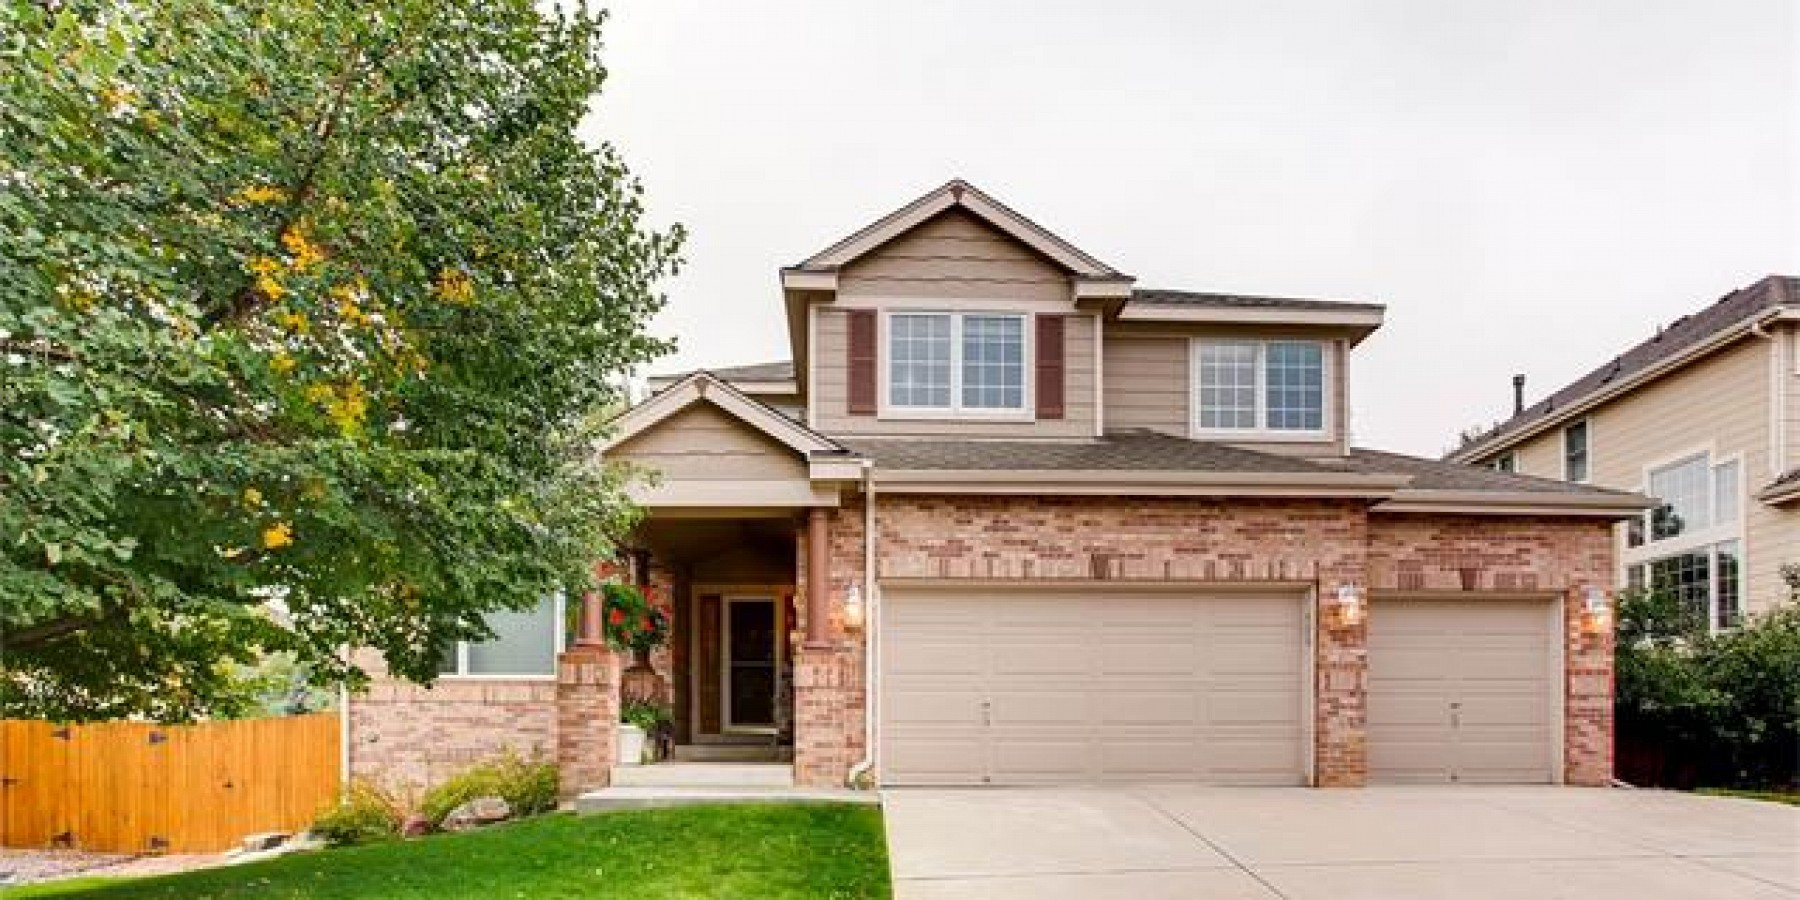 6437 South Robb Way, Littleton, CO 80127